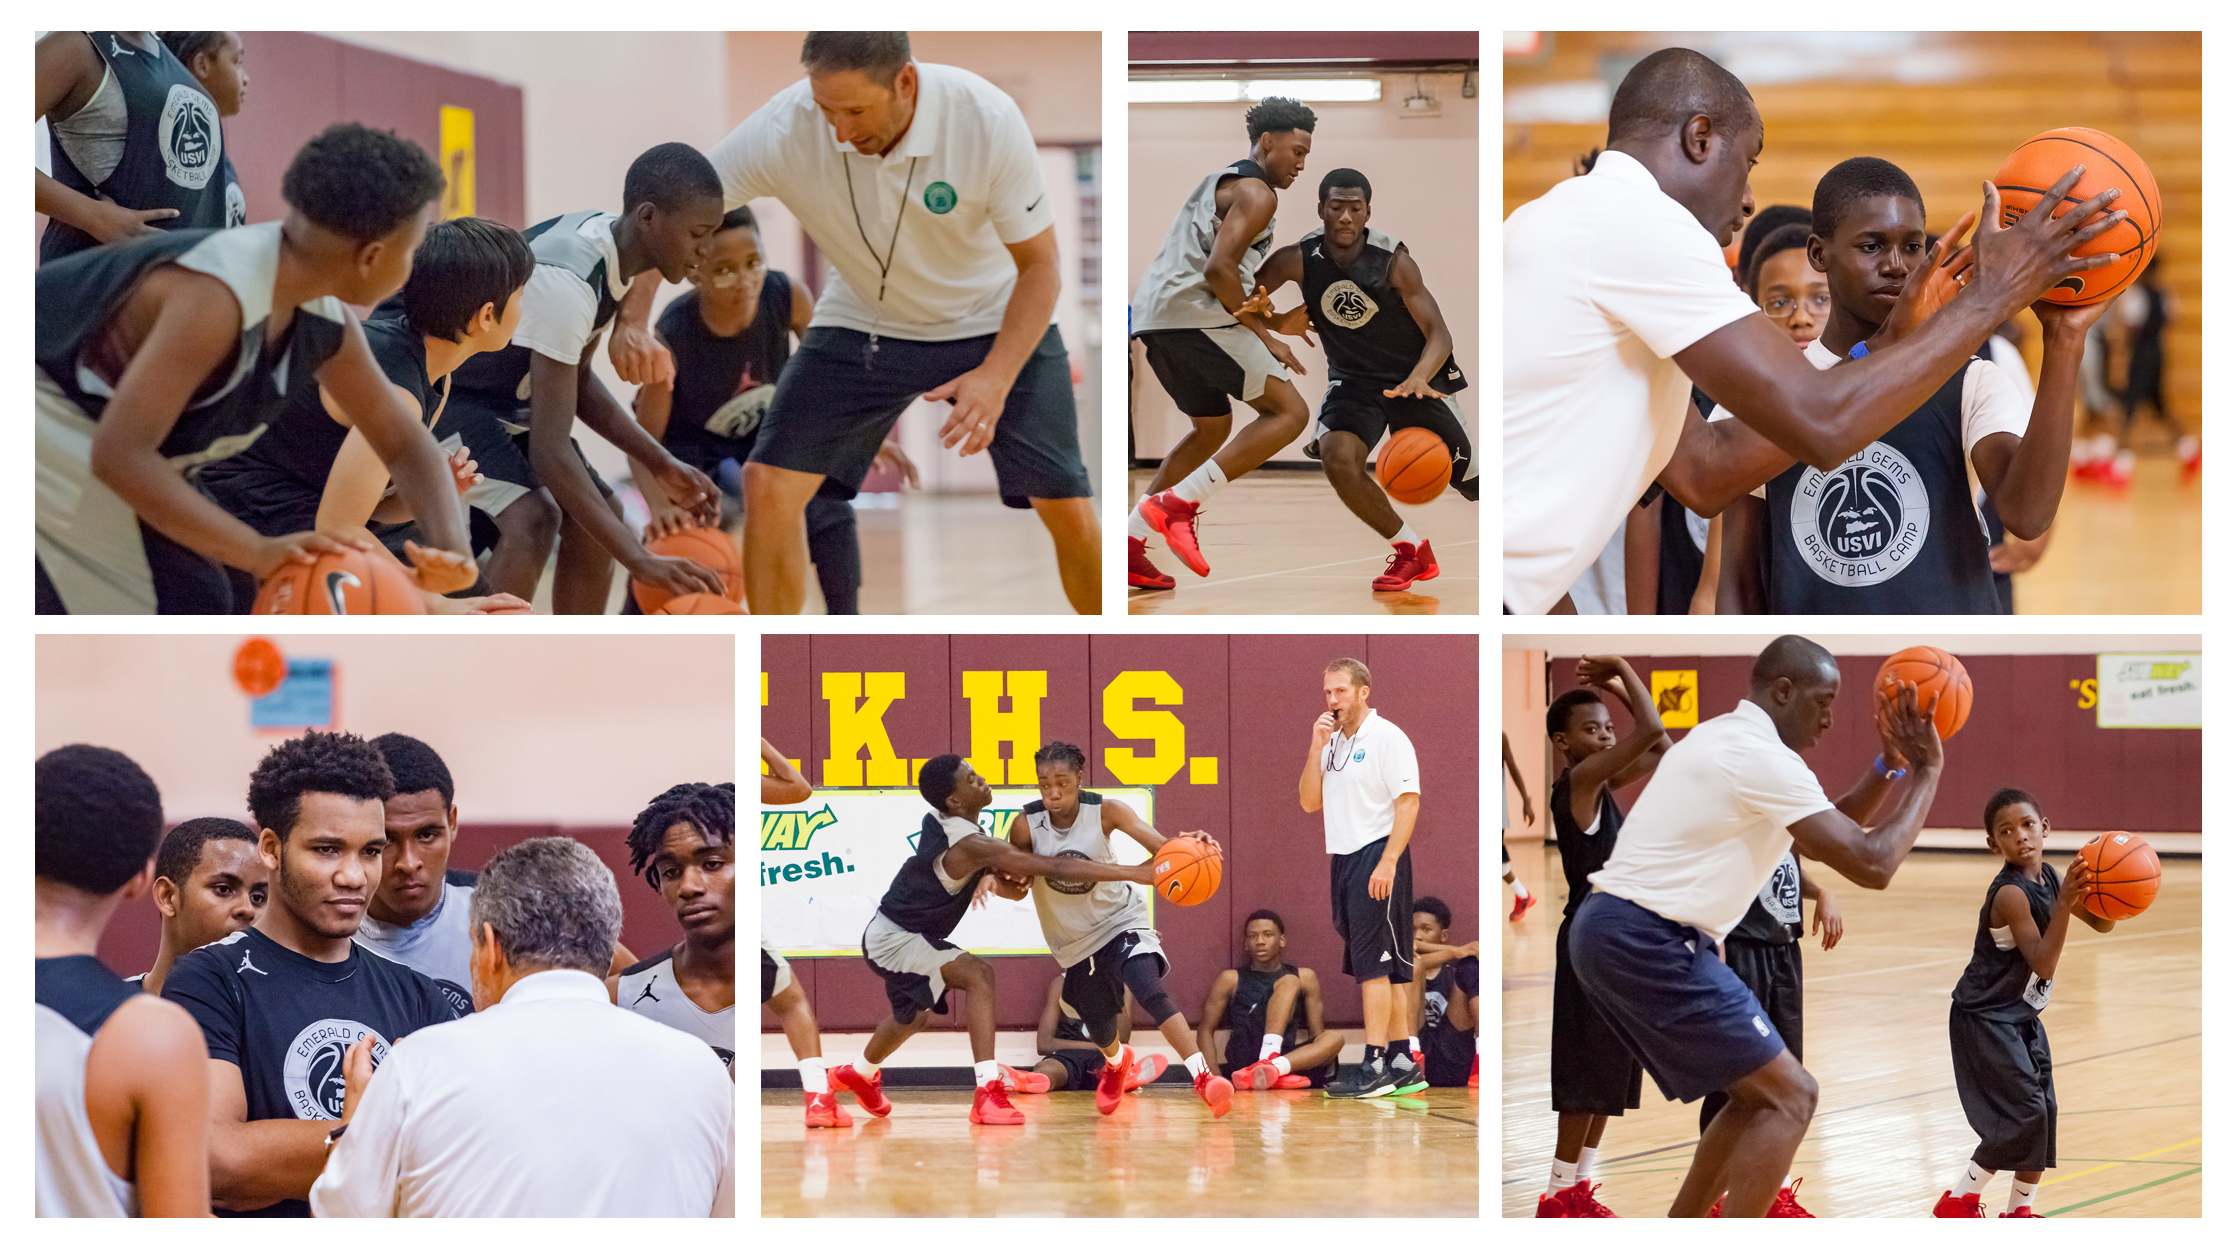 2017 Emerald Gems Basketball Camps and Clinics